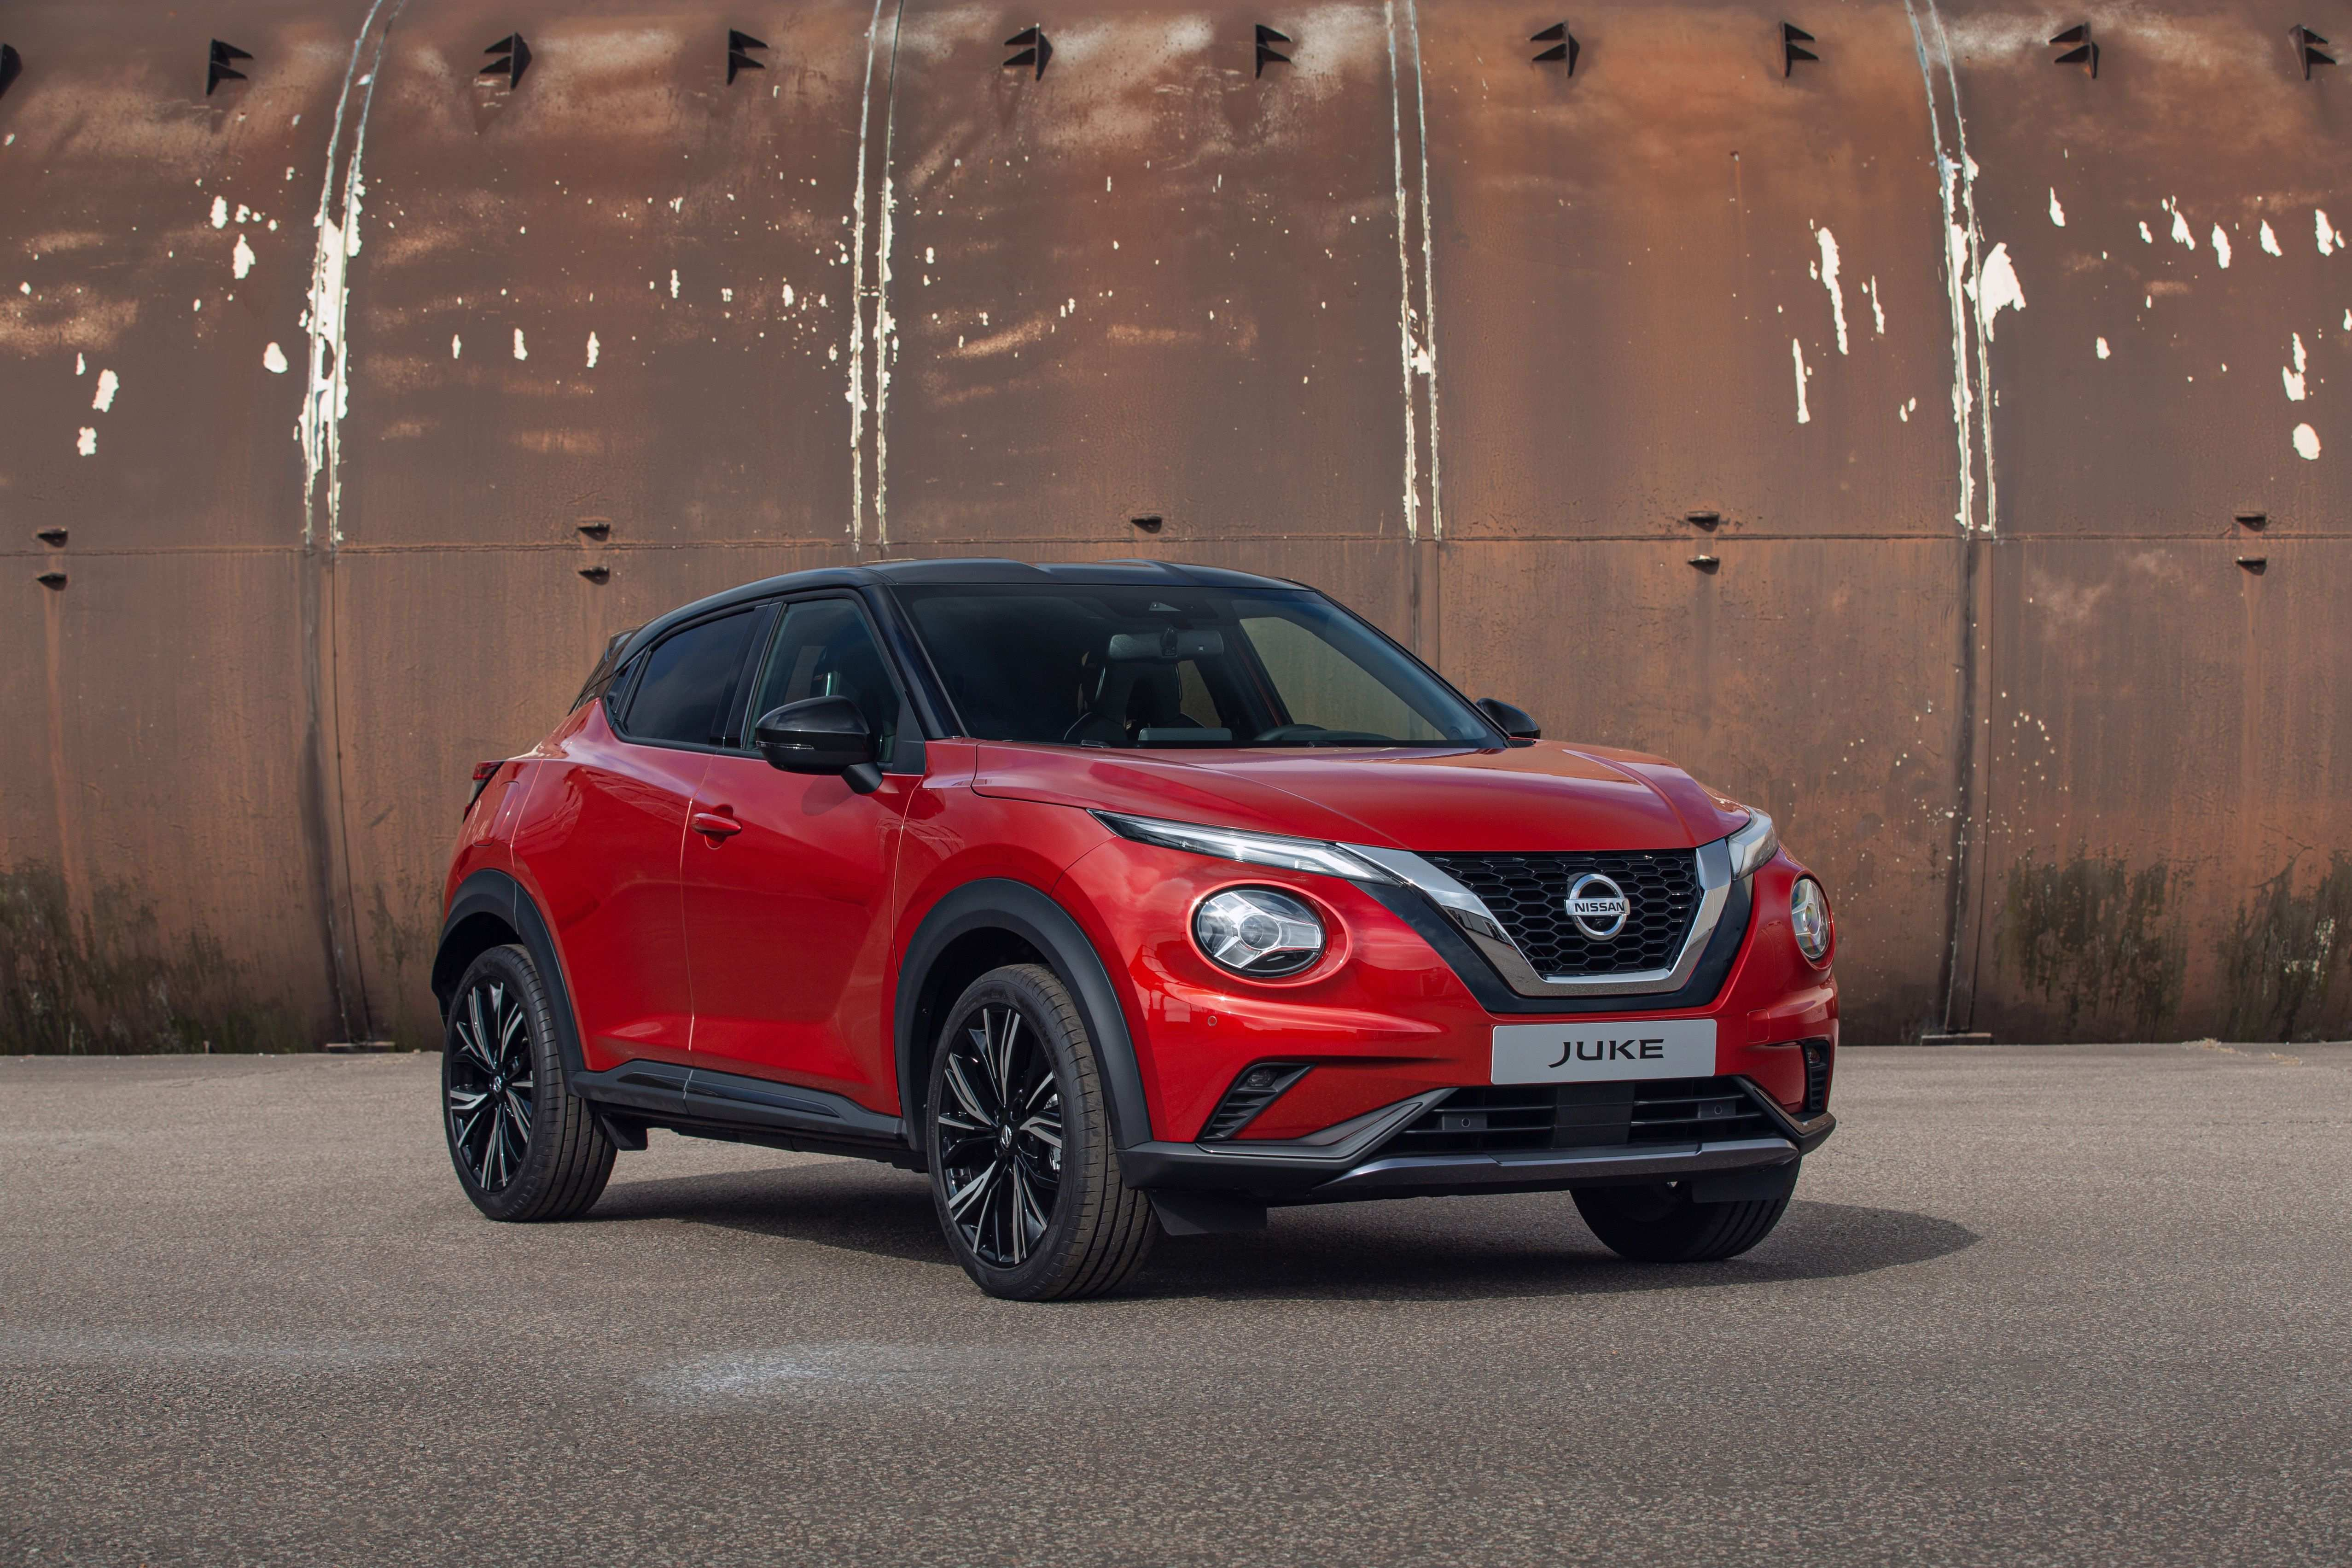 21 All New Nissan Juke Nismo 2020 Images